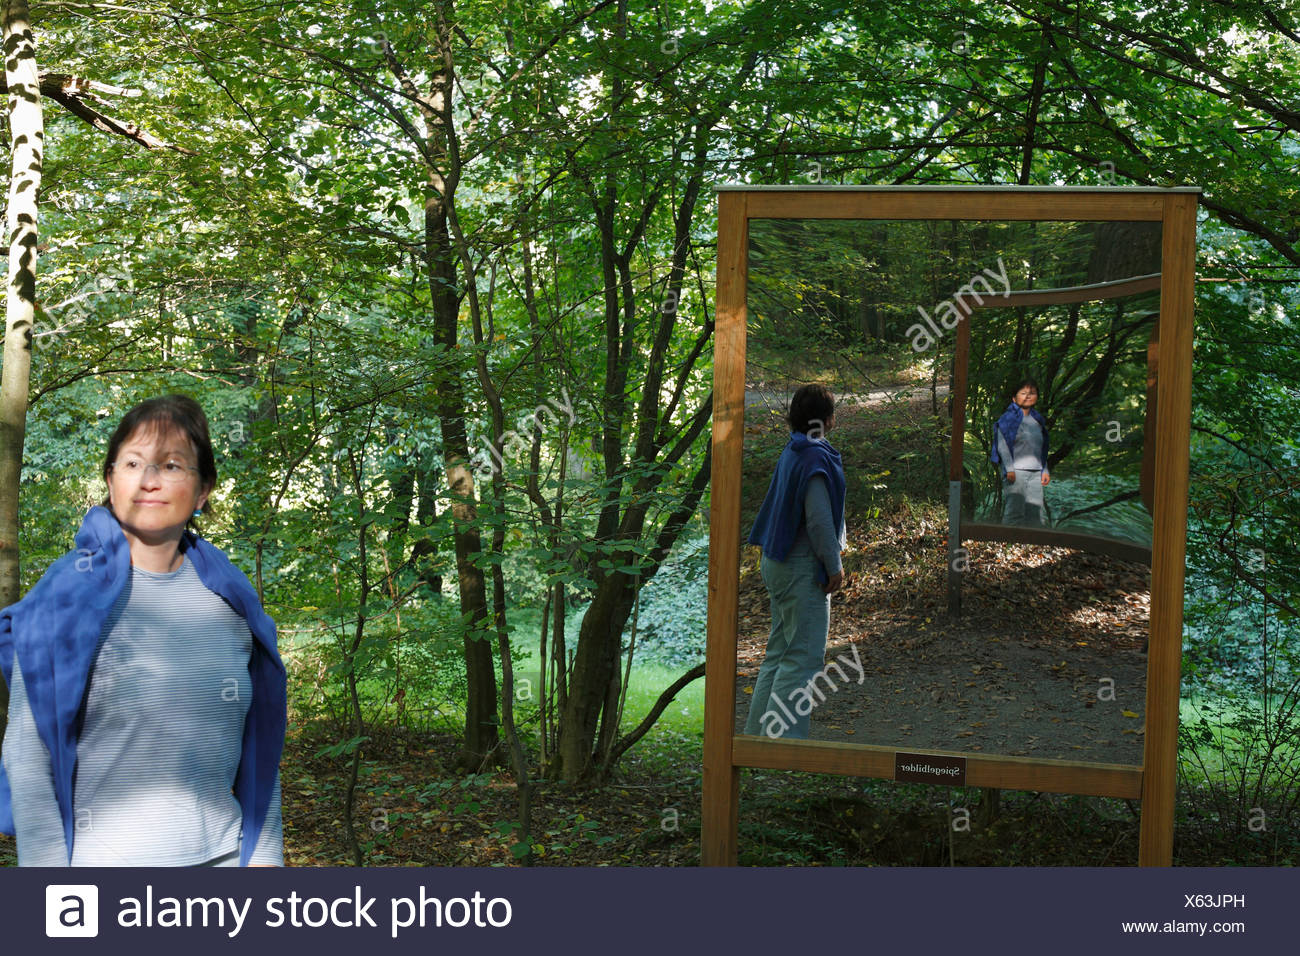 Mirror images, Weg der Besinnung (way of reflections), Bad Kissingen, Rhoen, Franconia, Germany - Stock Image